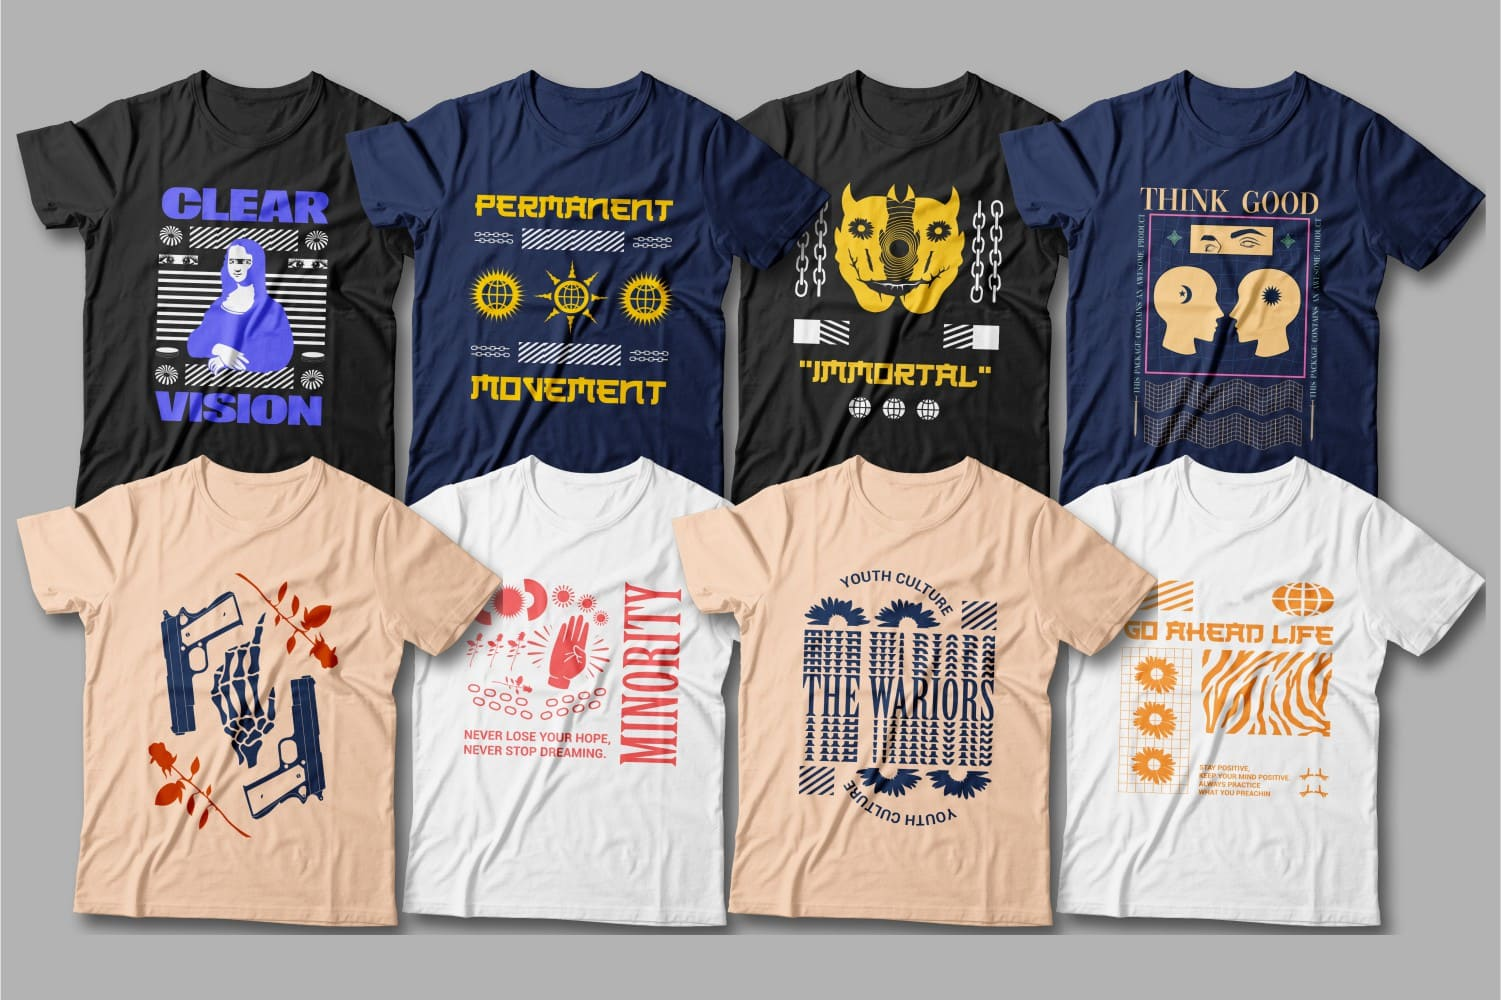 Colorful t-shirts with creative and extraordinary graphics.